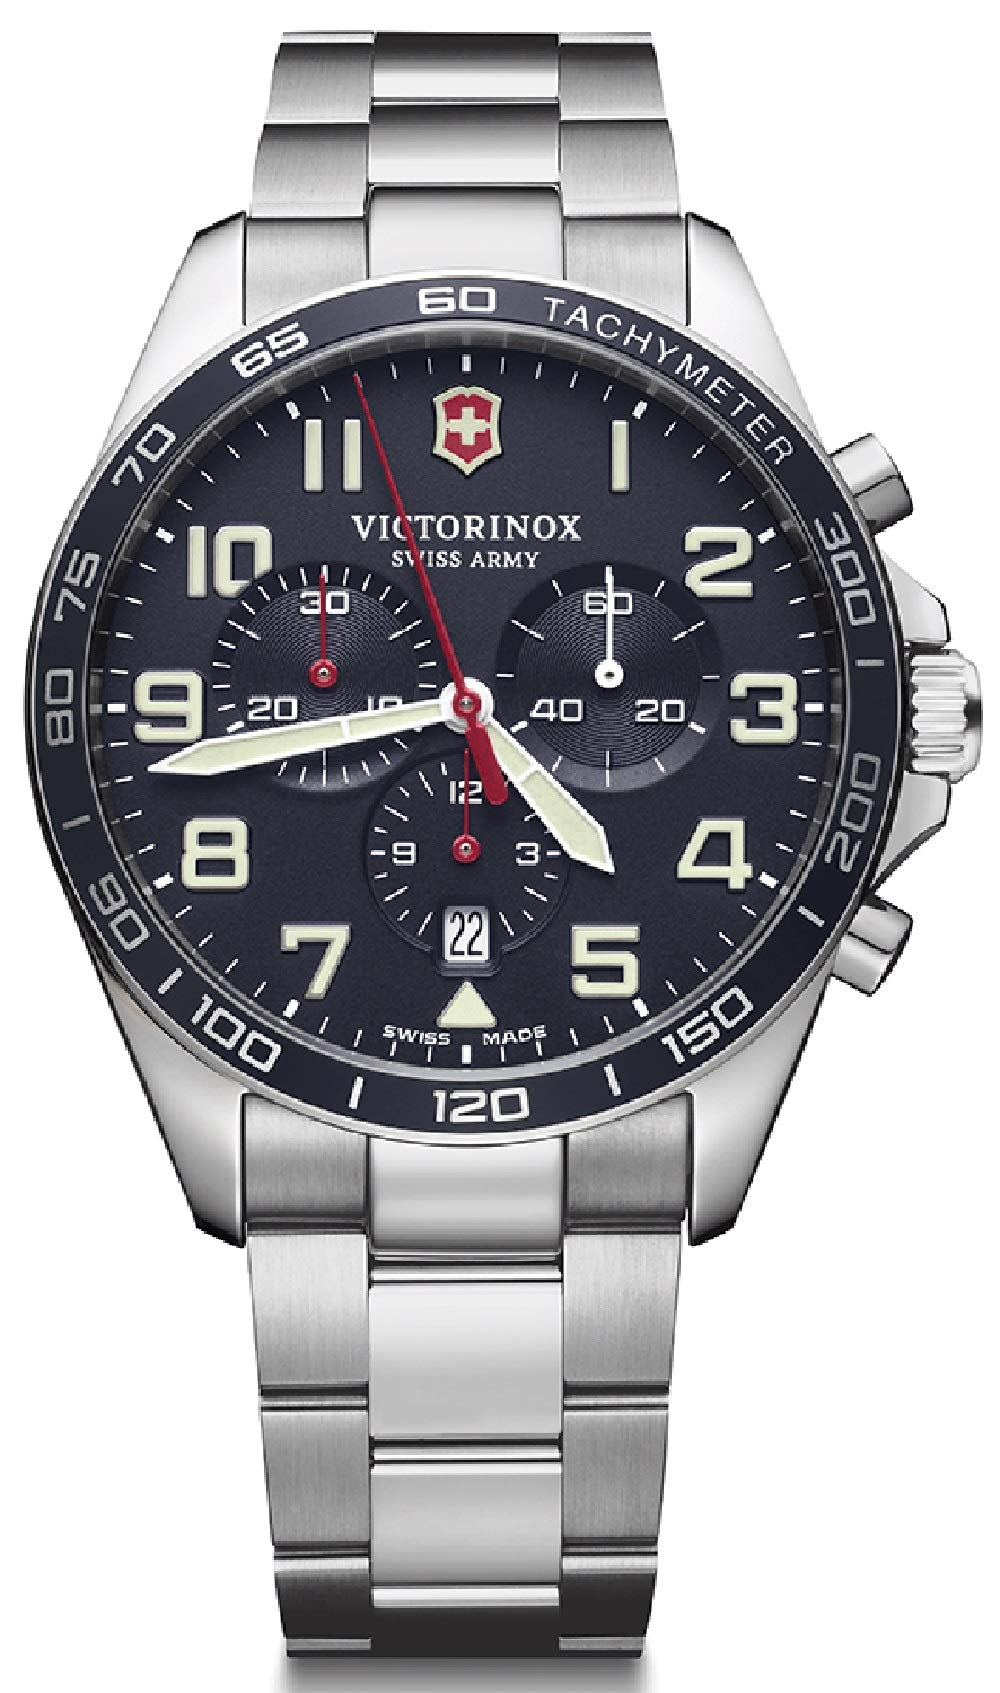 Victorinox Field Watch Mens Analogue Quartz Watch with Stainless Steel Bracelet V241857